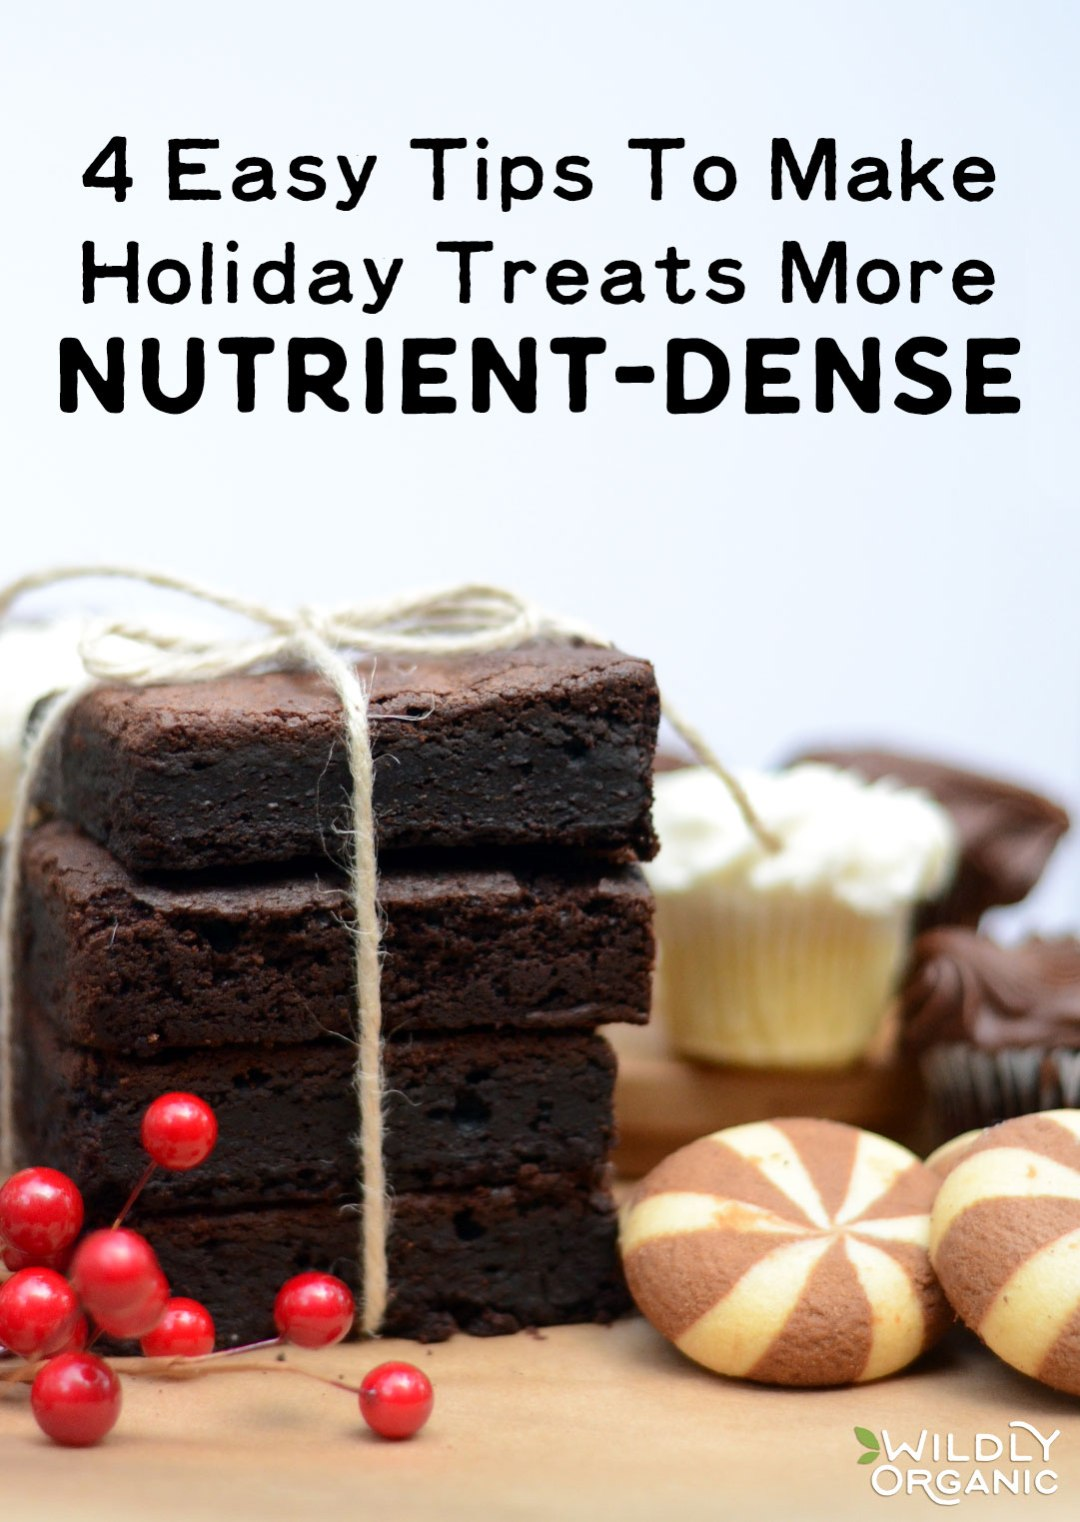 Most of us look forward to the sweets and treats of the holidays... but we don't look forward to the weight gain or sugar overload. Here are 4 easy ways to make holiday treats more nutrient-dense -- so you're not just eating empty calories, unhealthy fats, or refined, processed ingredients!